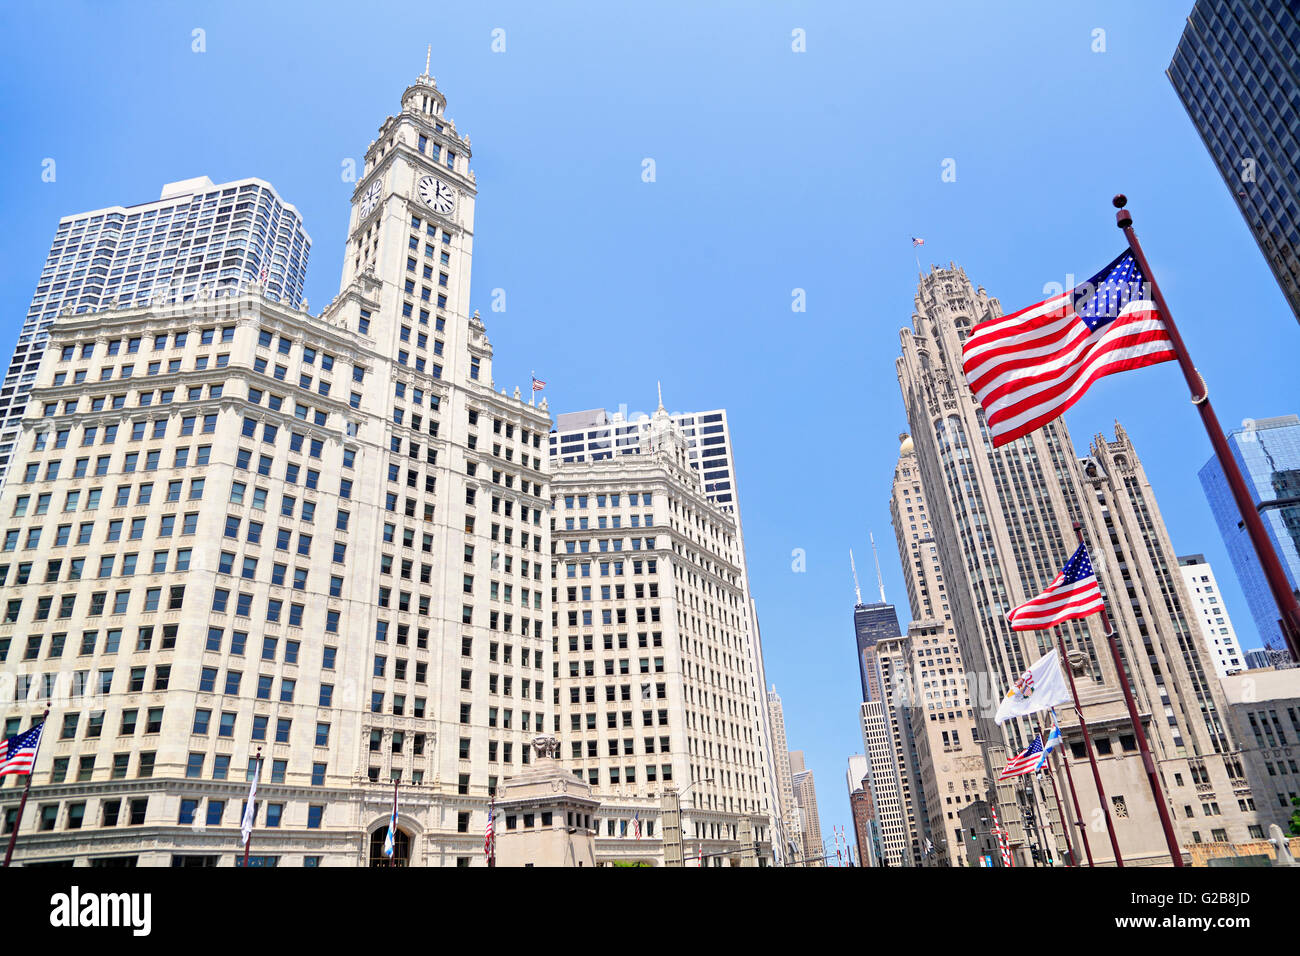 Wrigley Building and Tribune Tower in Chicago, Illinois, USA - Stock Image